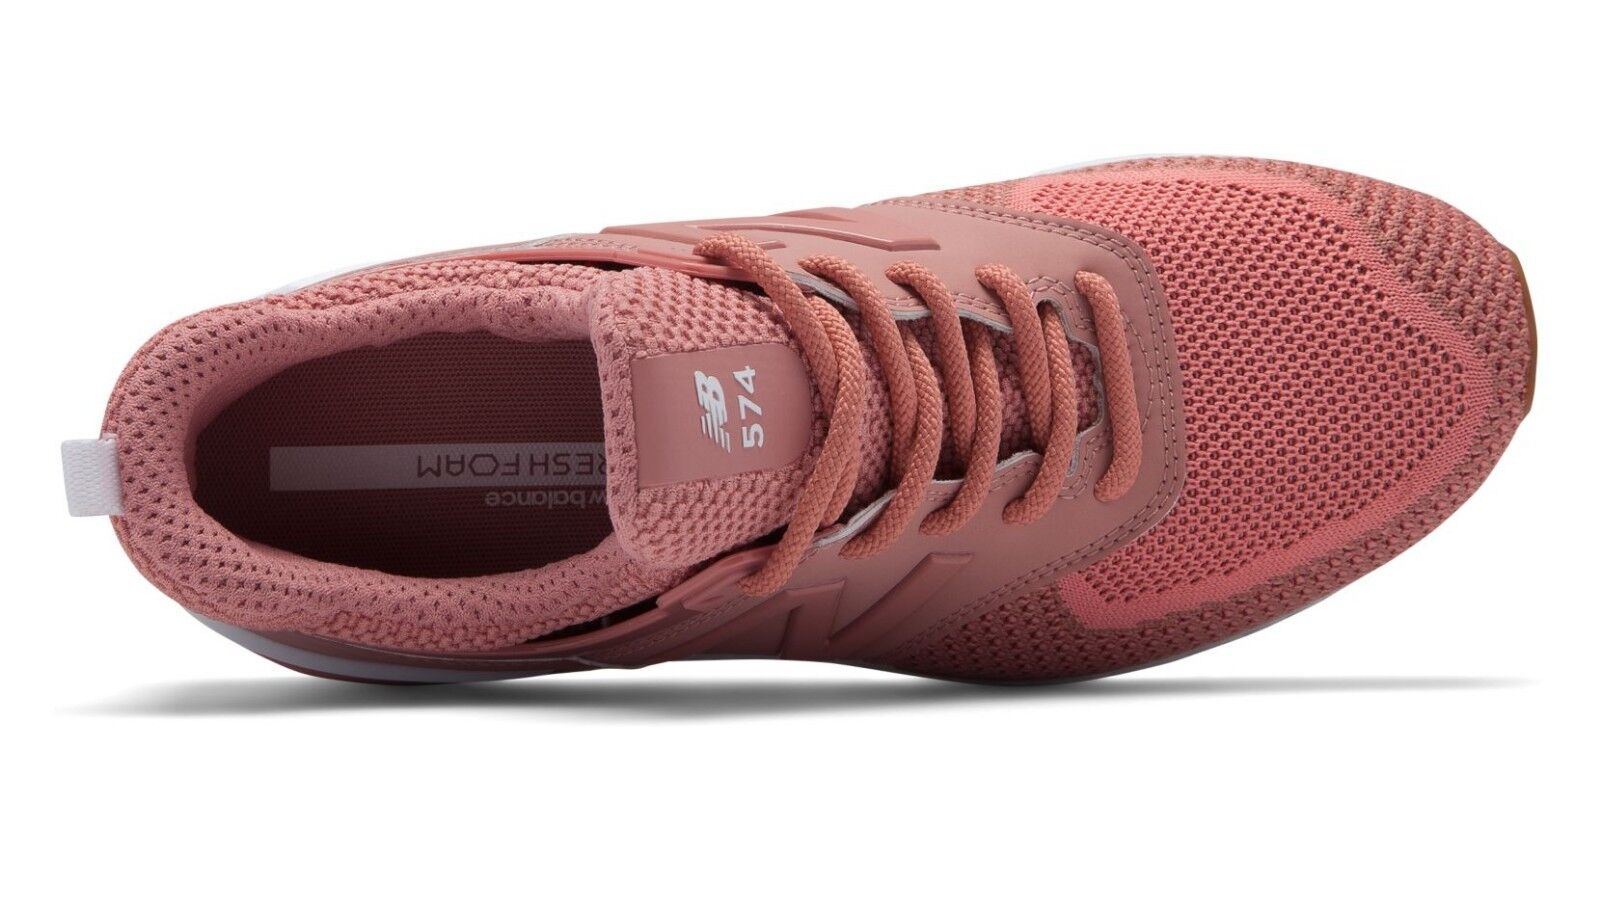 NEW BALANCE PINK WOMEN WS574WC 574 SPORT DUSTED PEACH PINK BALANCE Lifestyle Sneakers 6-10 003094